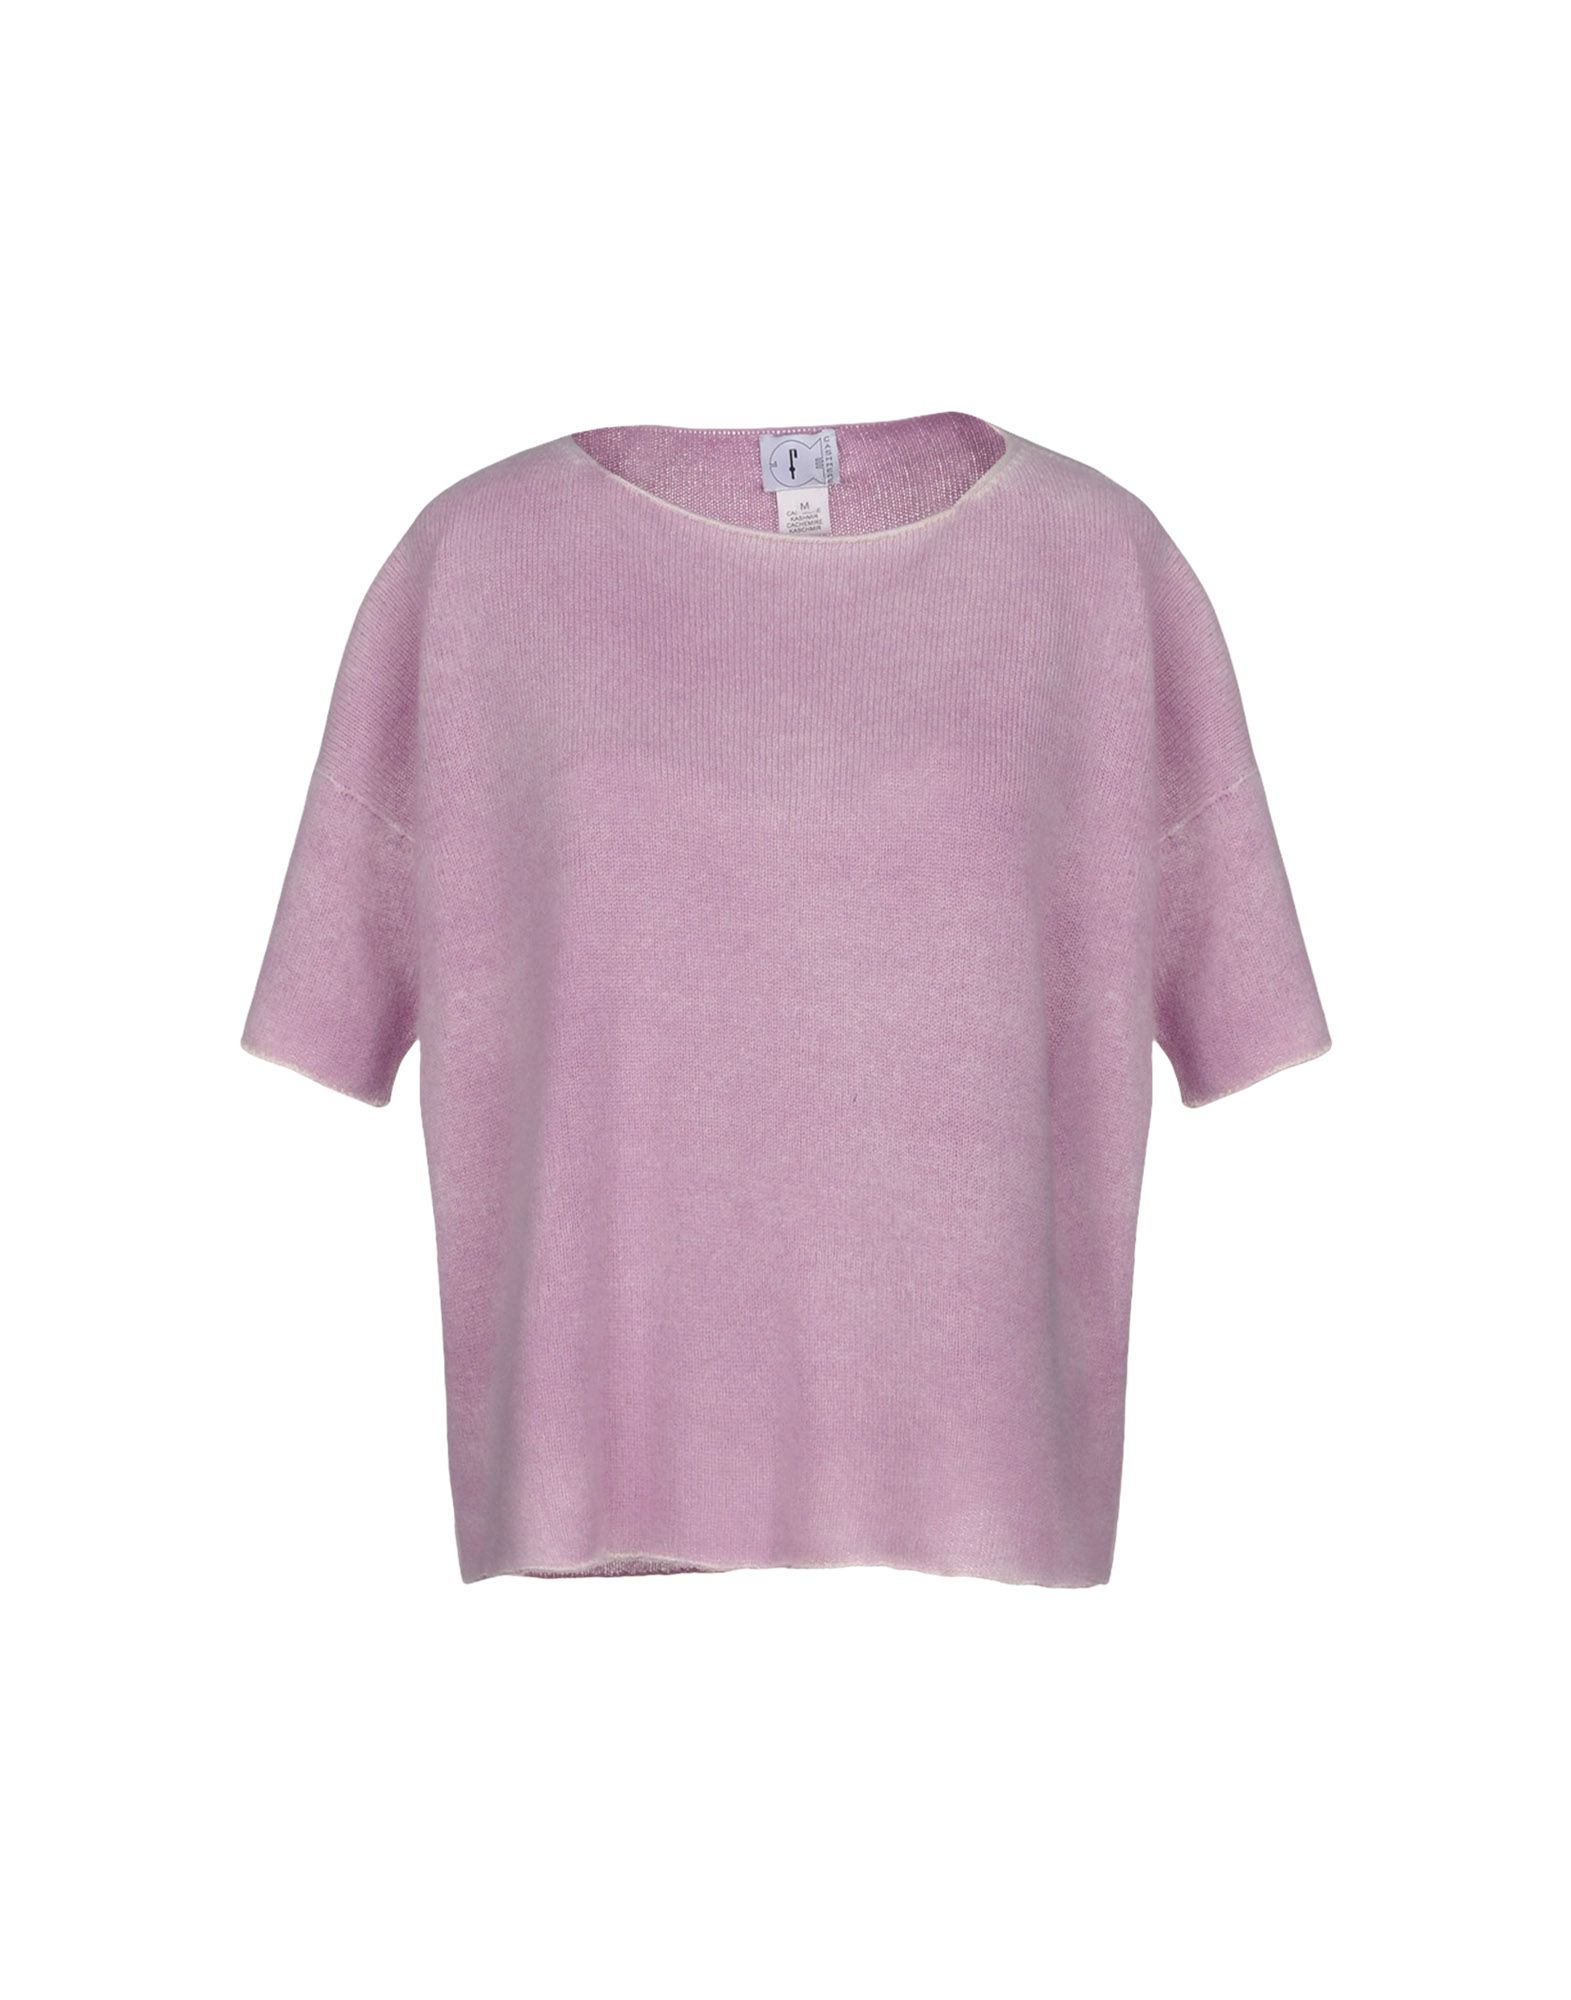 F CASHMERE Cashmere Blend in Pink